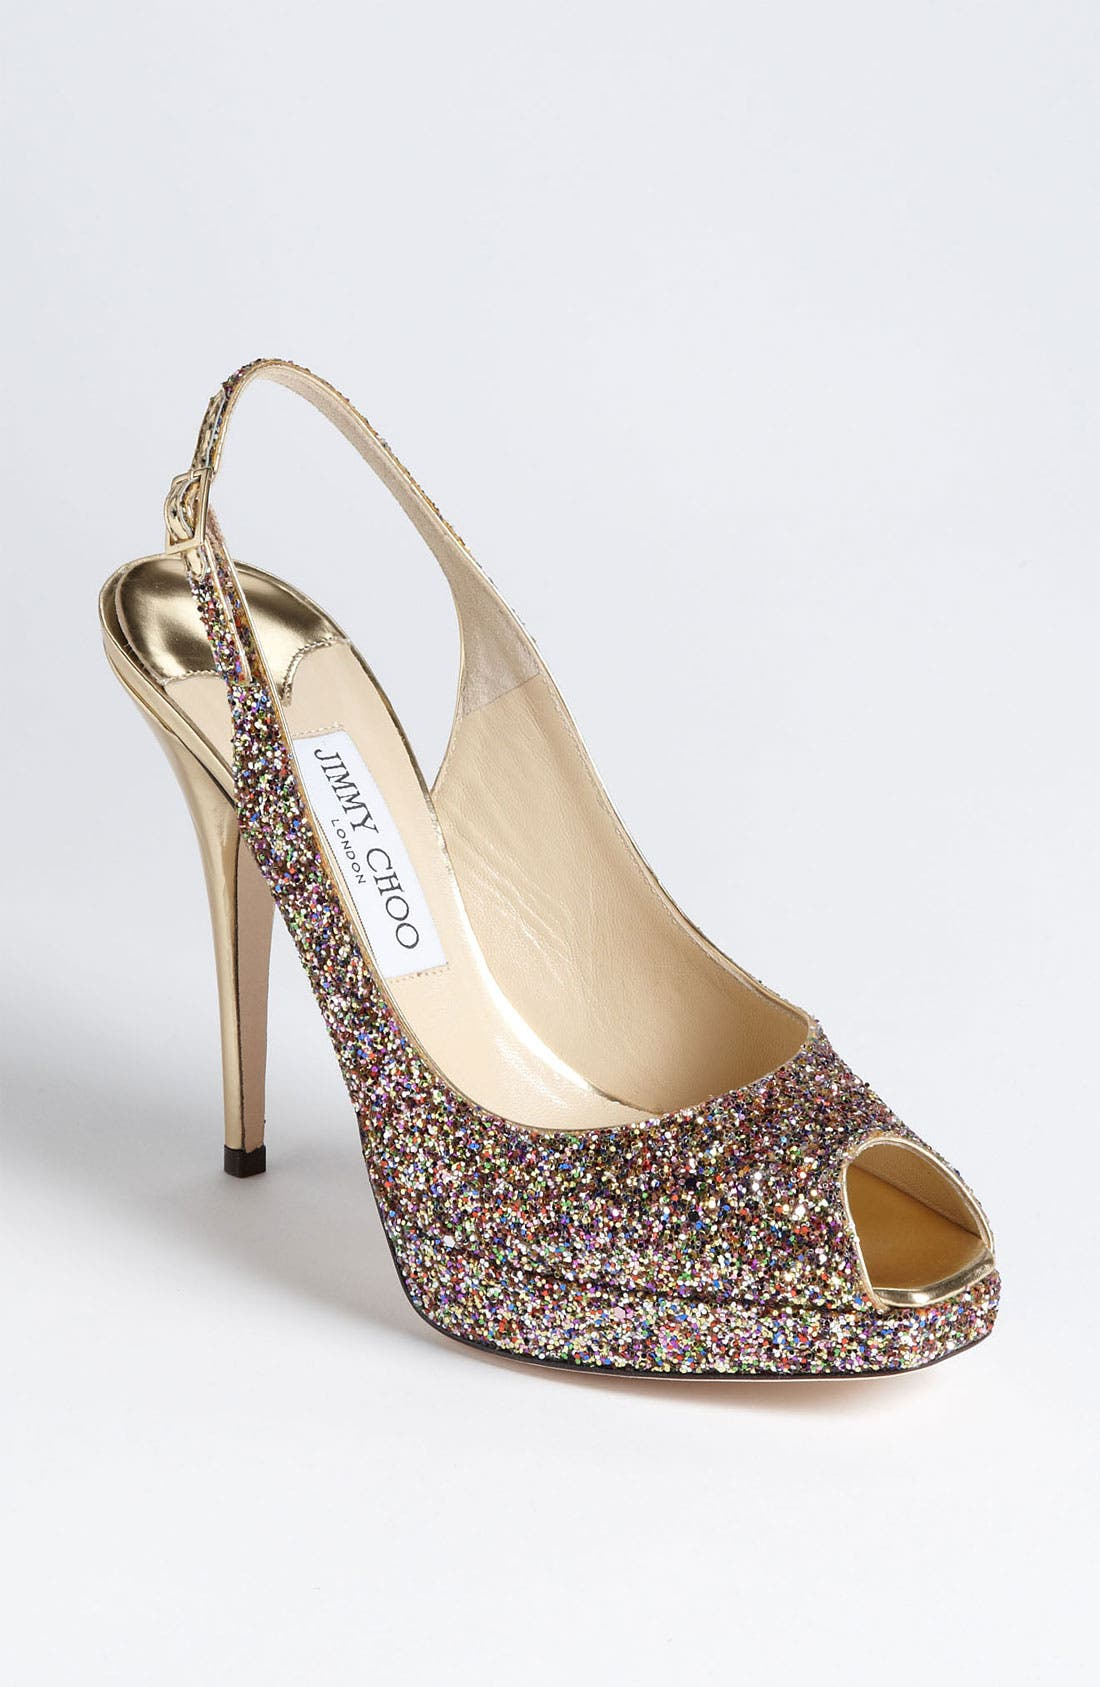 Main Image - Jimmy Choo 'Clue' Slingback Pump (Nordstrom Exclusive)